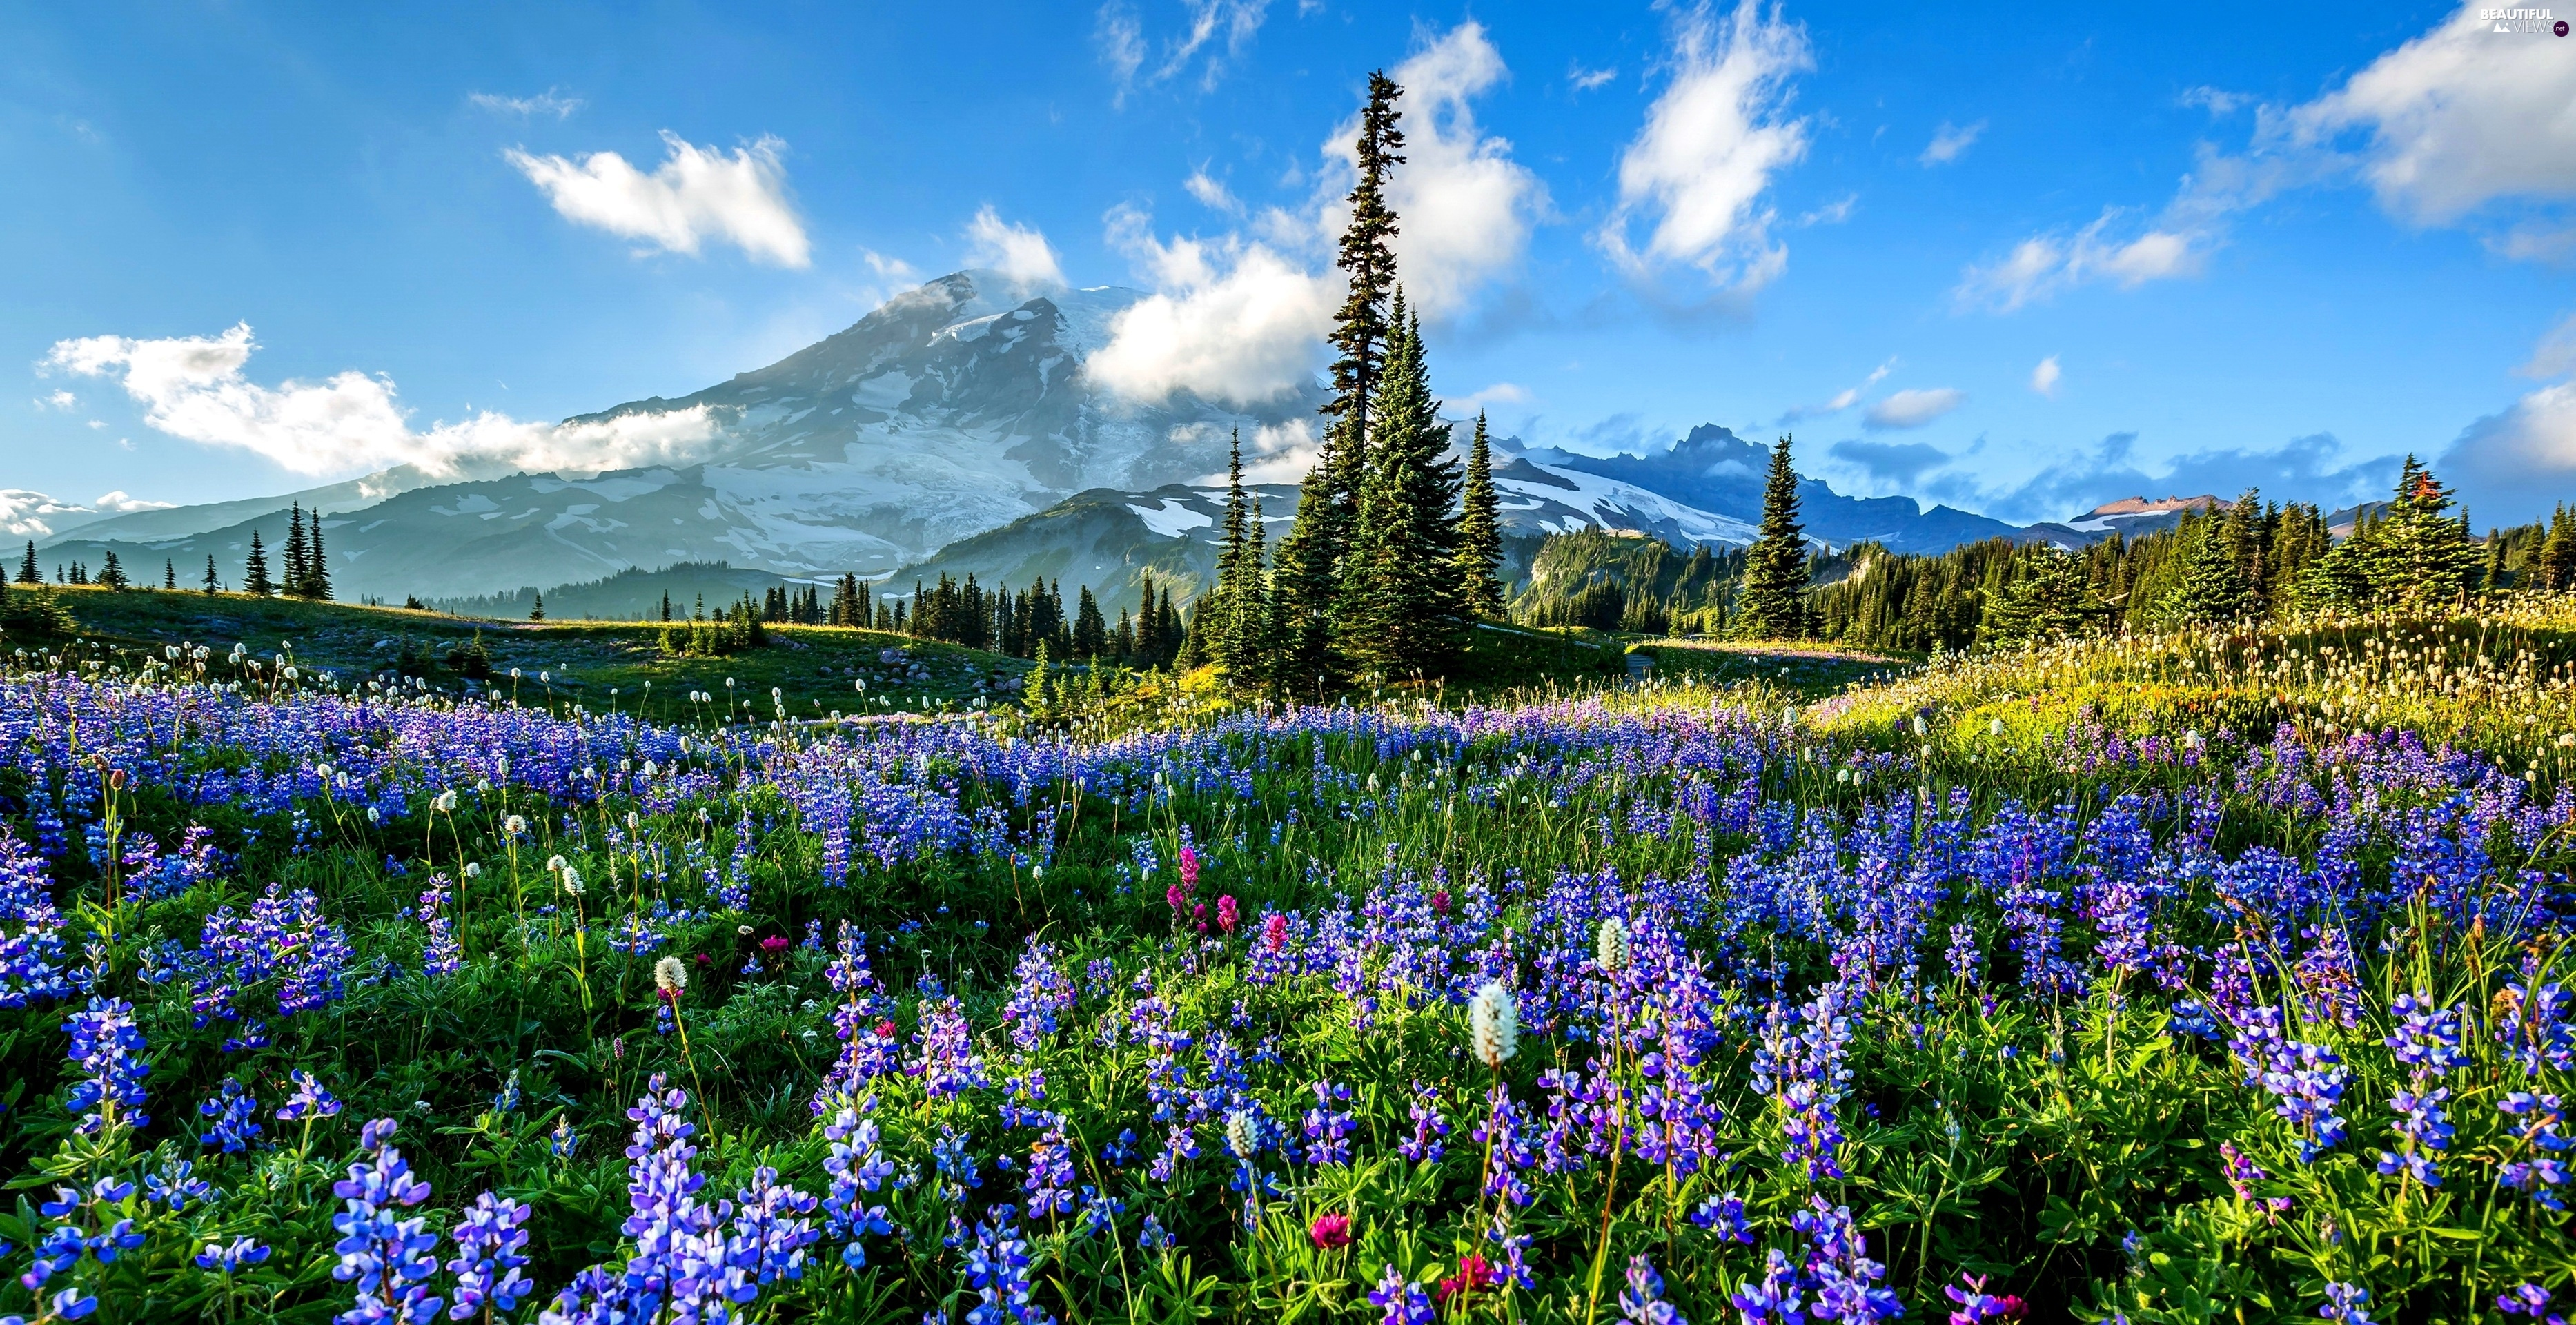 woods, Mountains, Meadow, Flowers